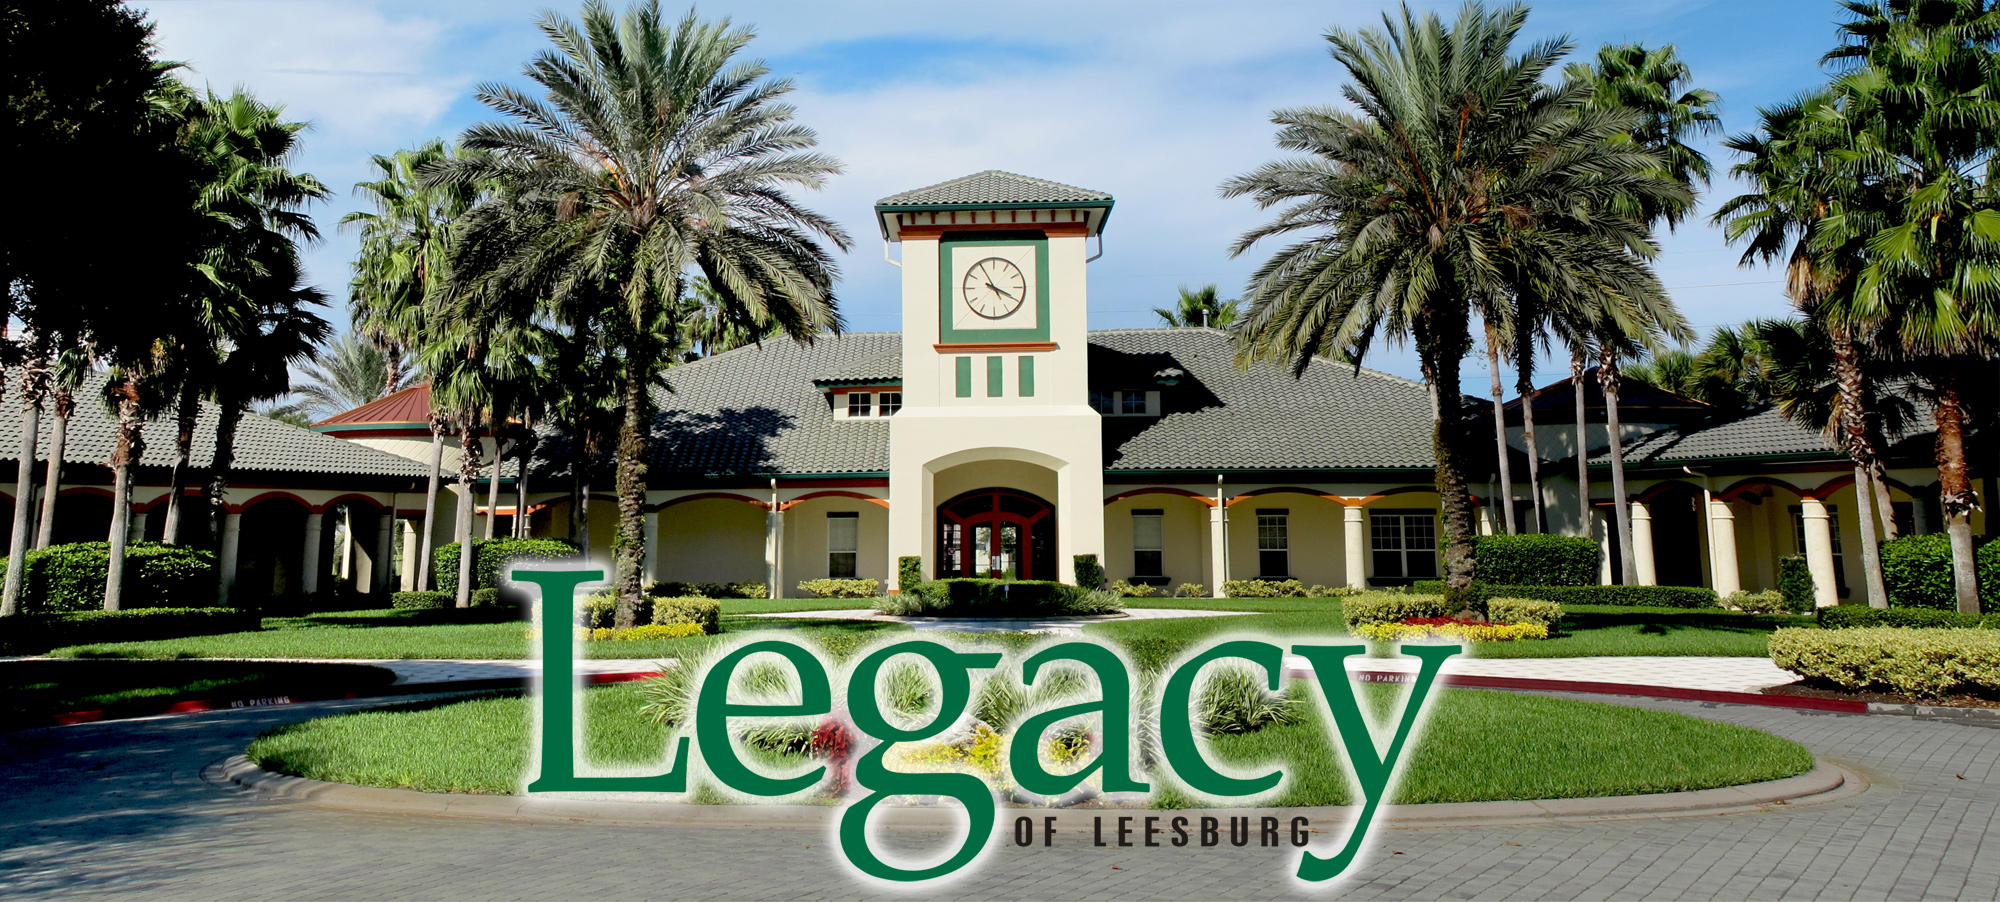 Legacy Of Leesburg Residents' Club